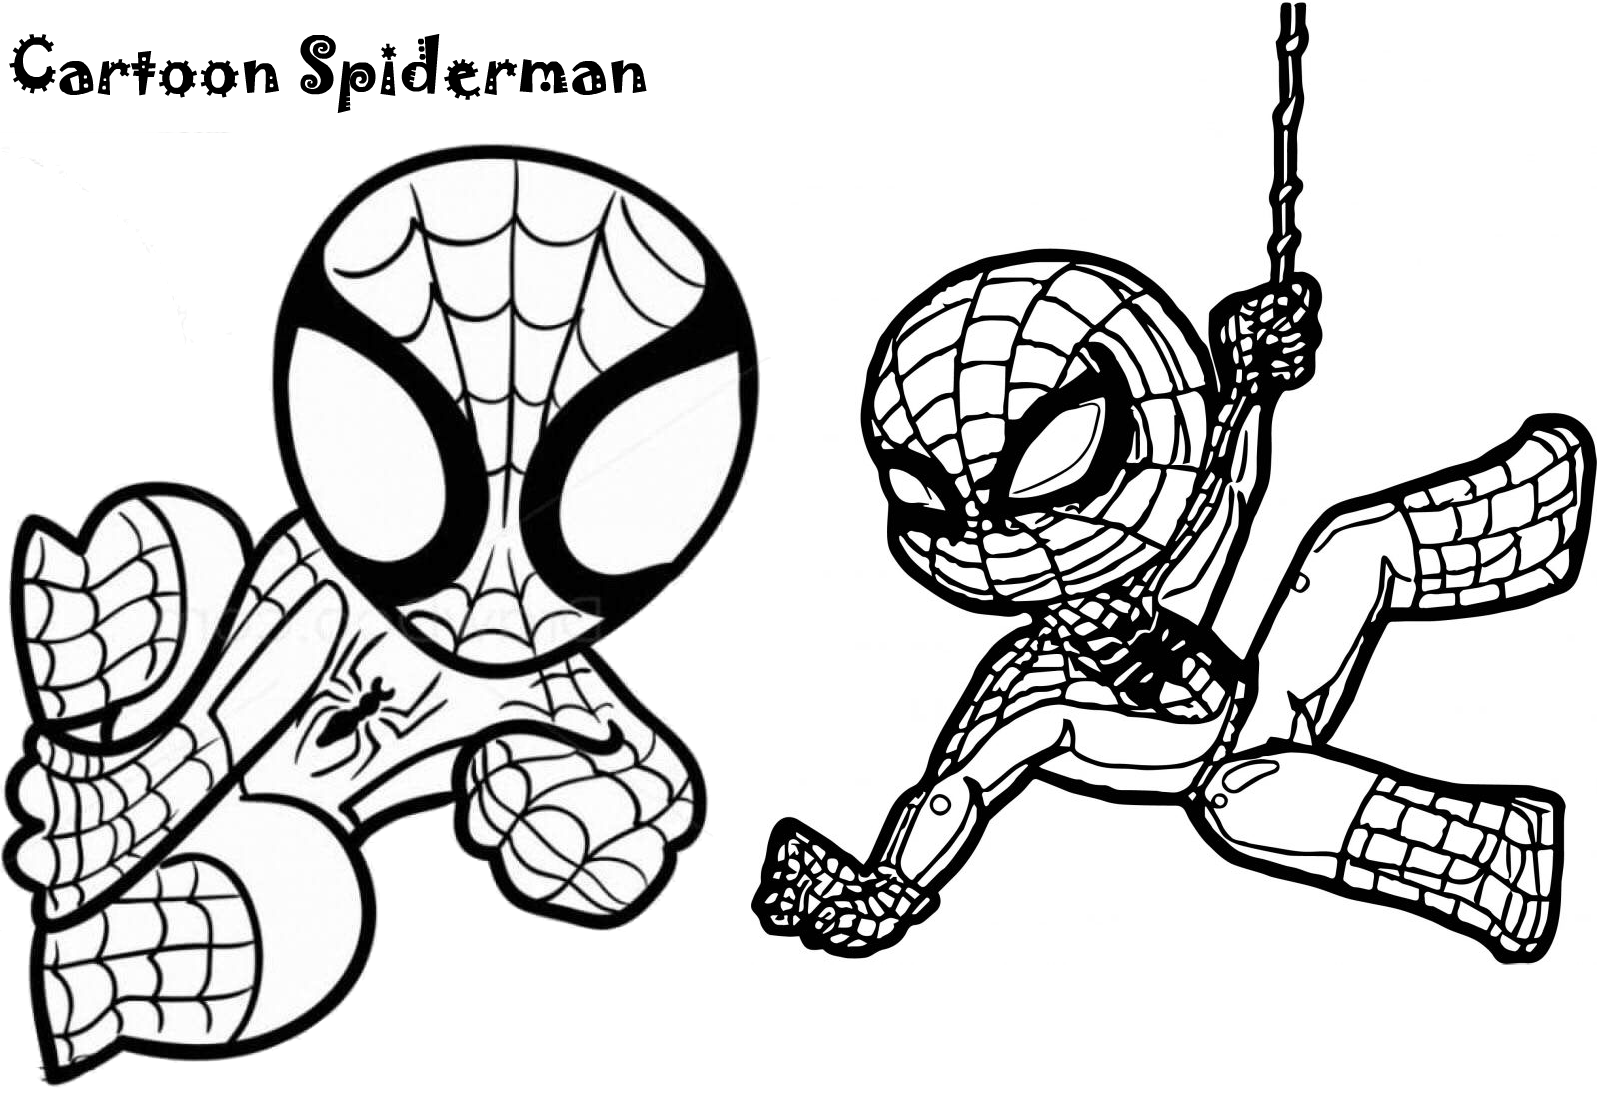 29 Coloring Pictures of Spiderman: Superhero Spider-man Coloring